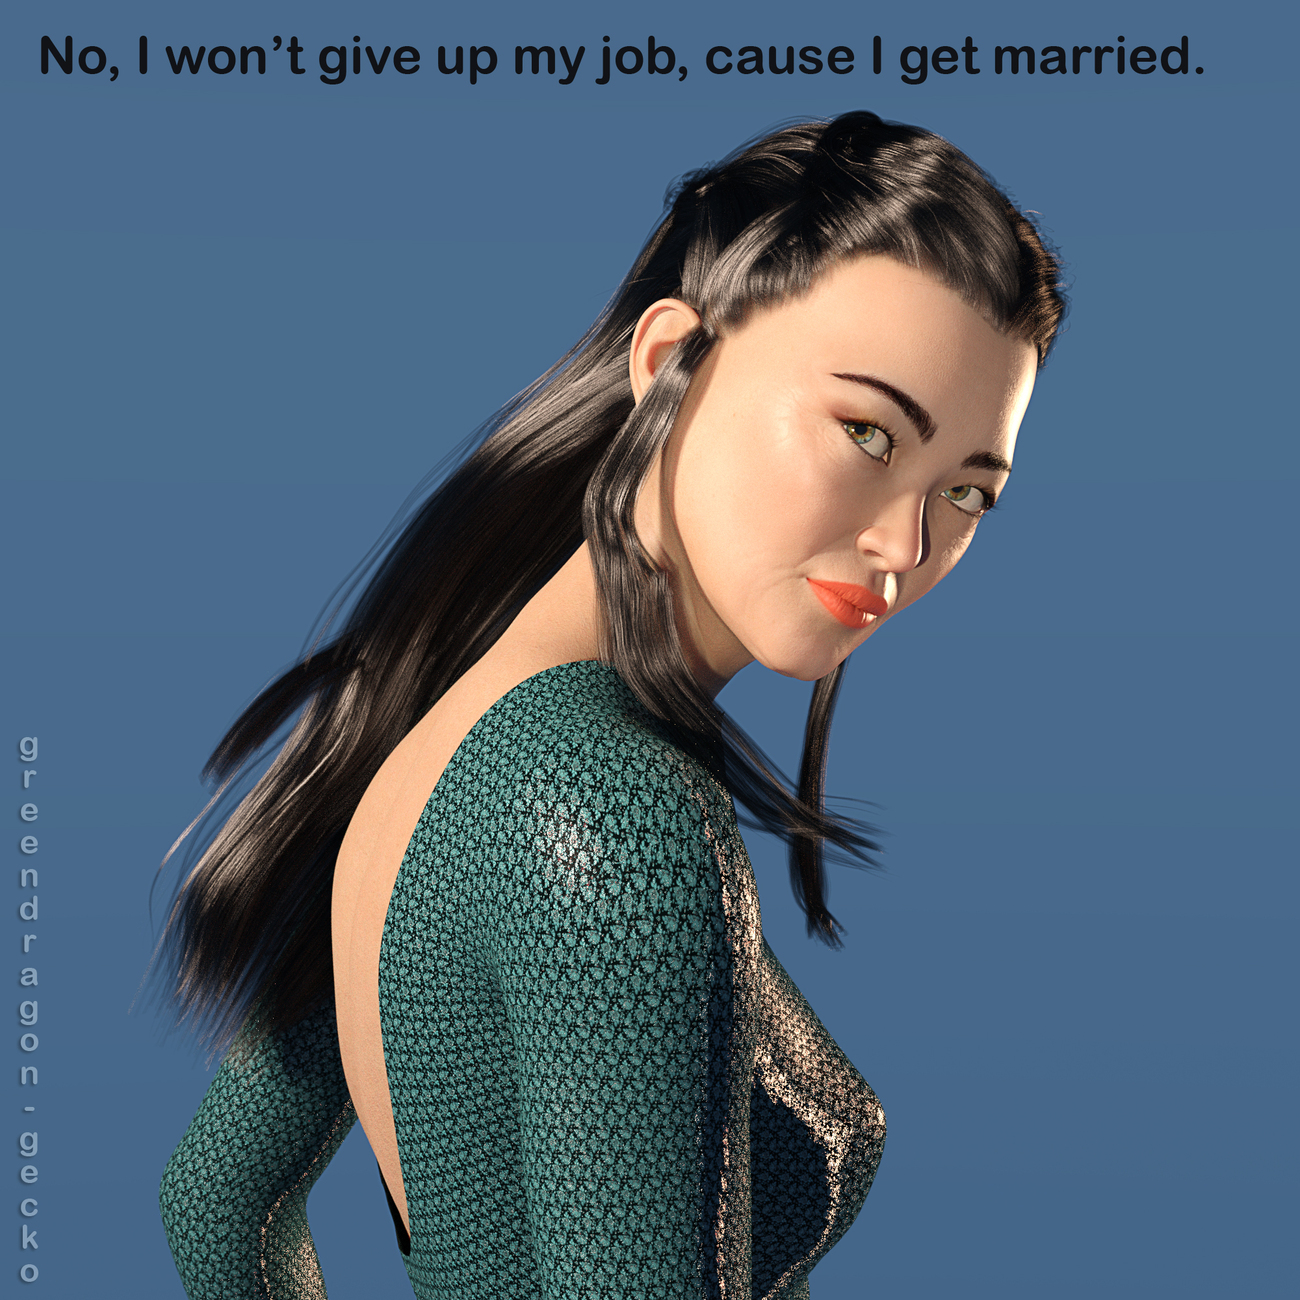 Why should I give up my job just because I marry? by Salerina